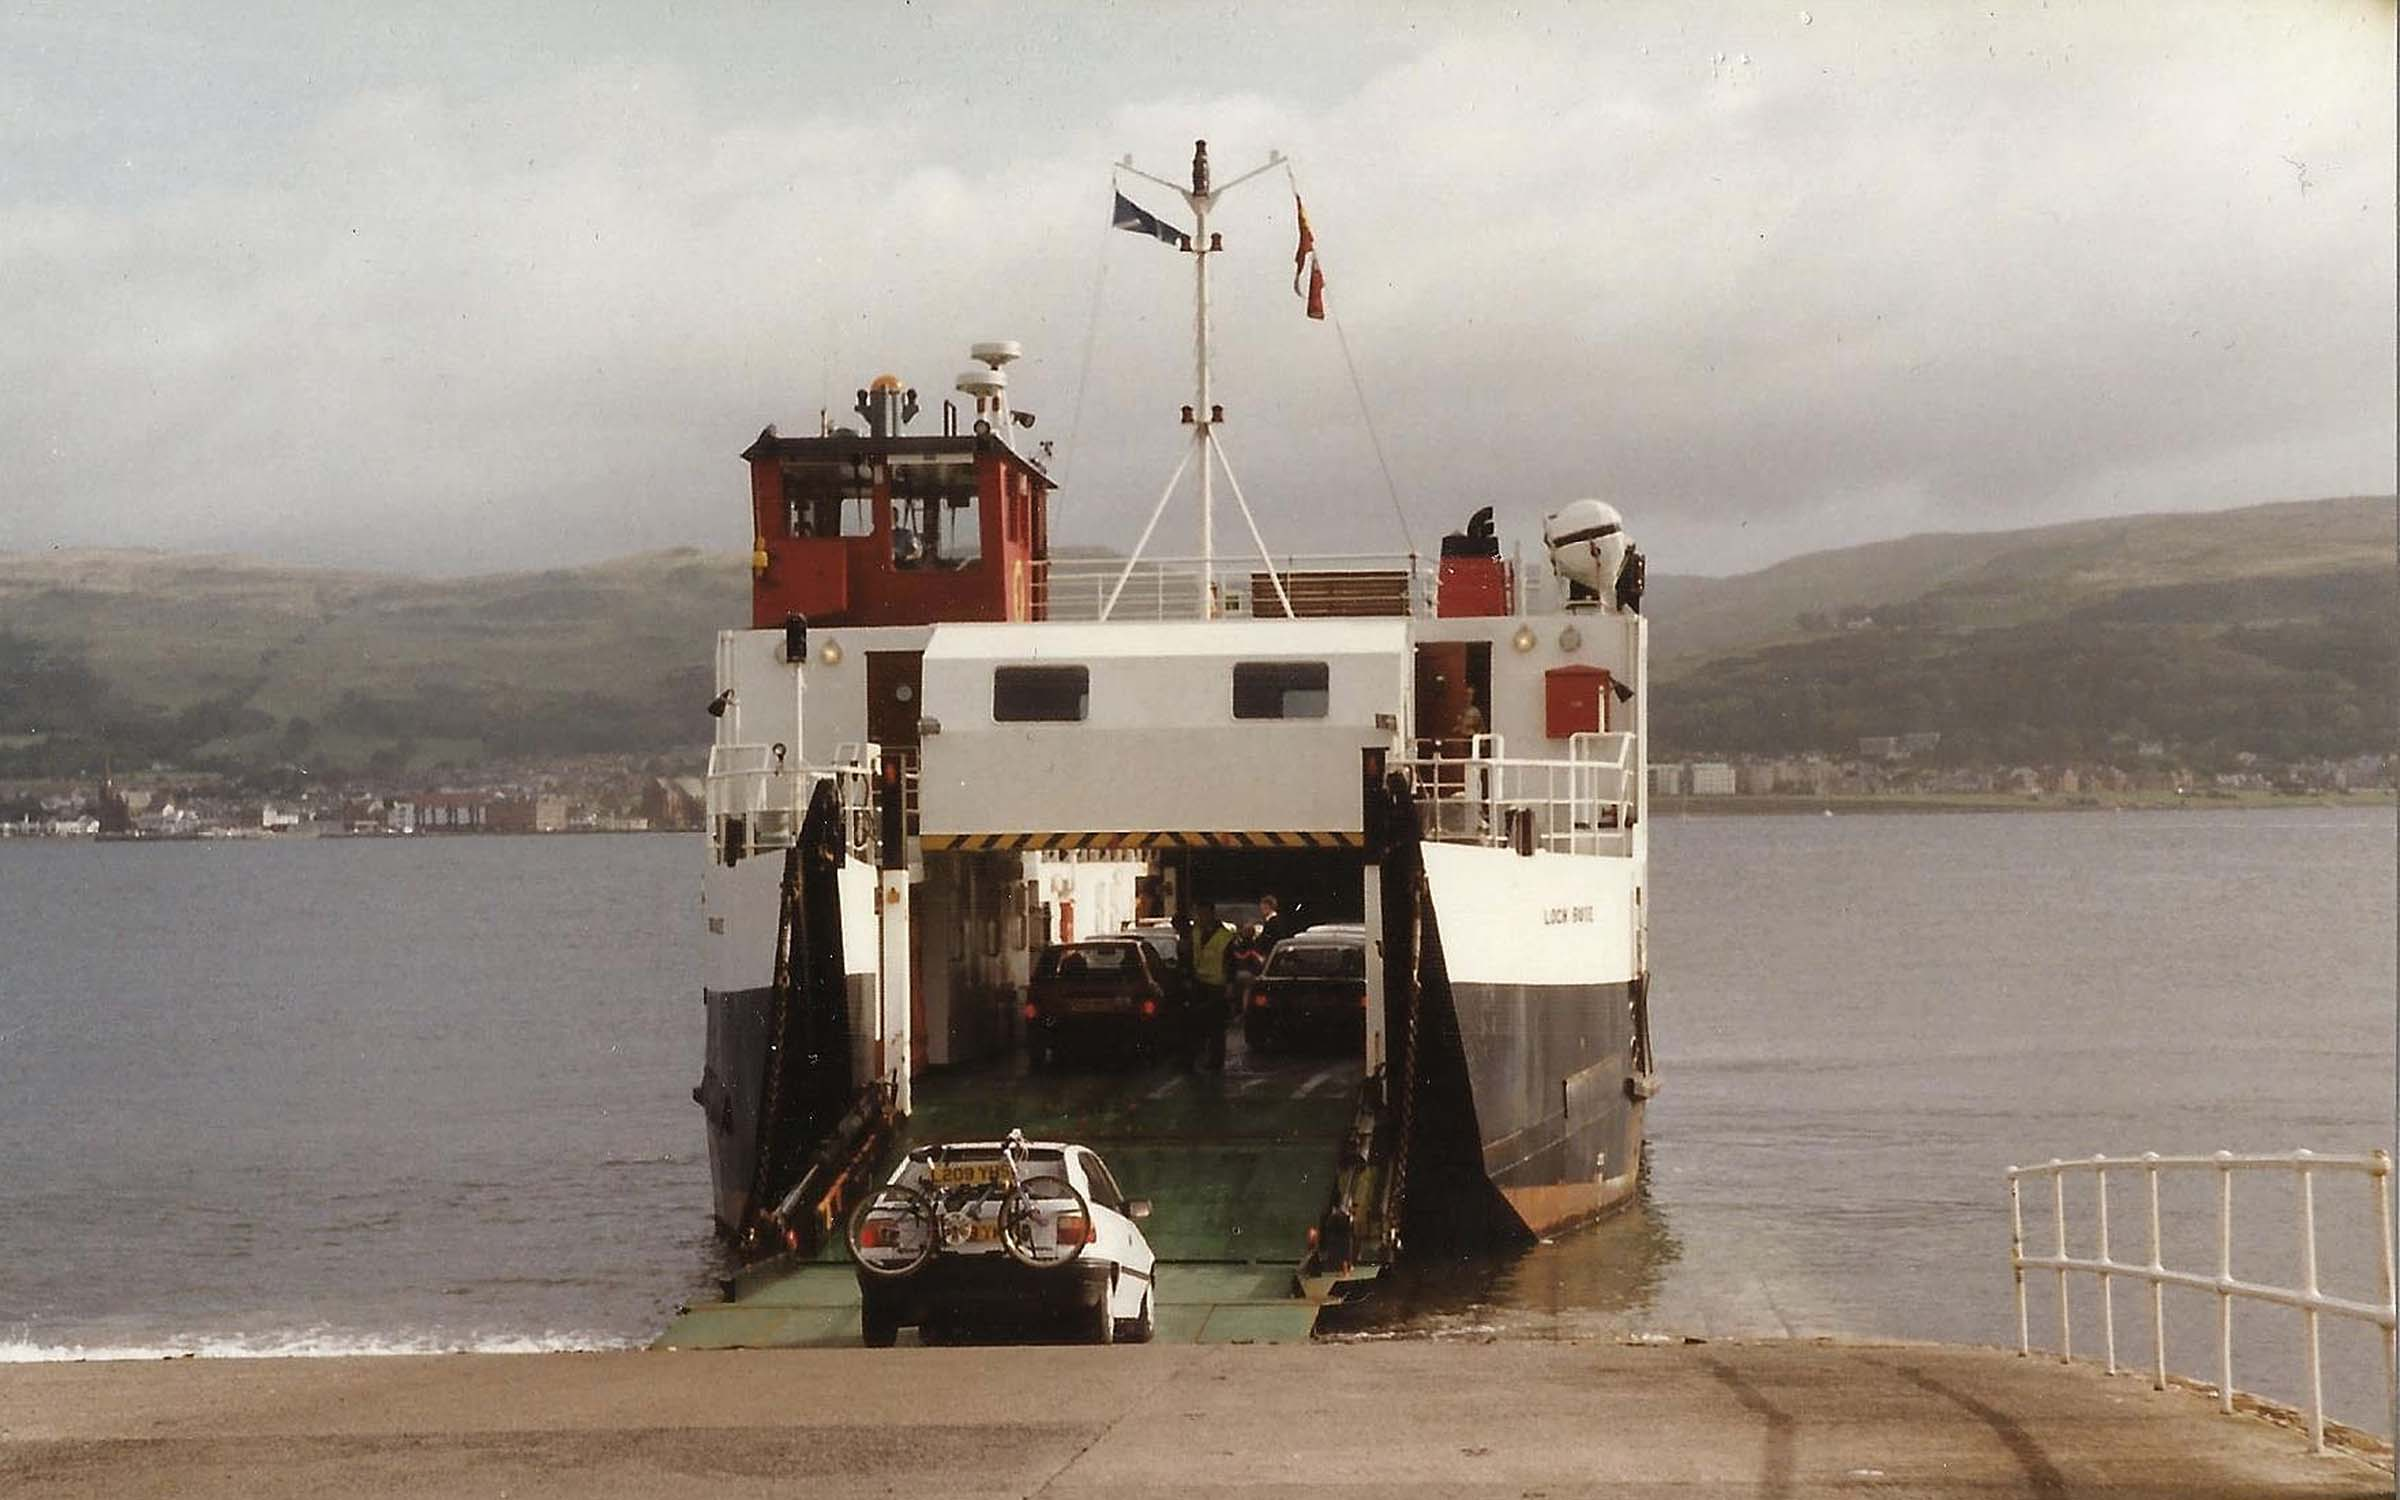 Loch Buie at Cumbrae Slip on emergency relief (Iain McPherson)